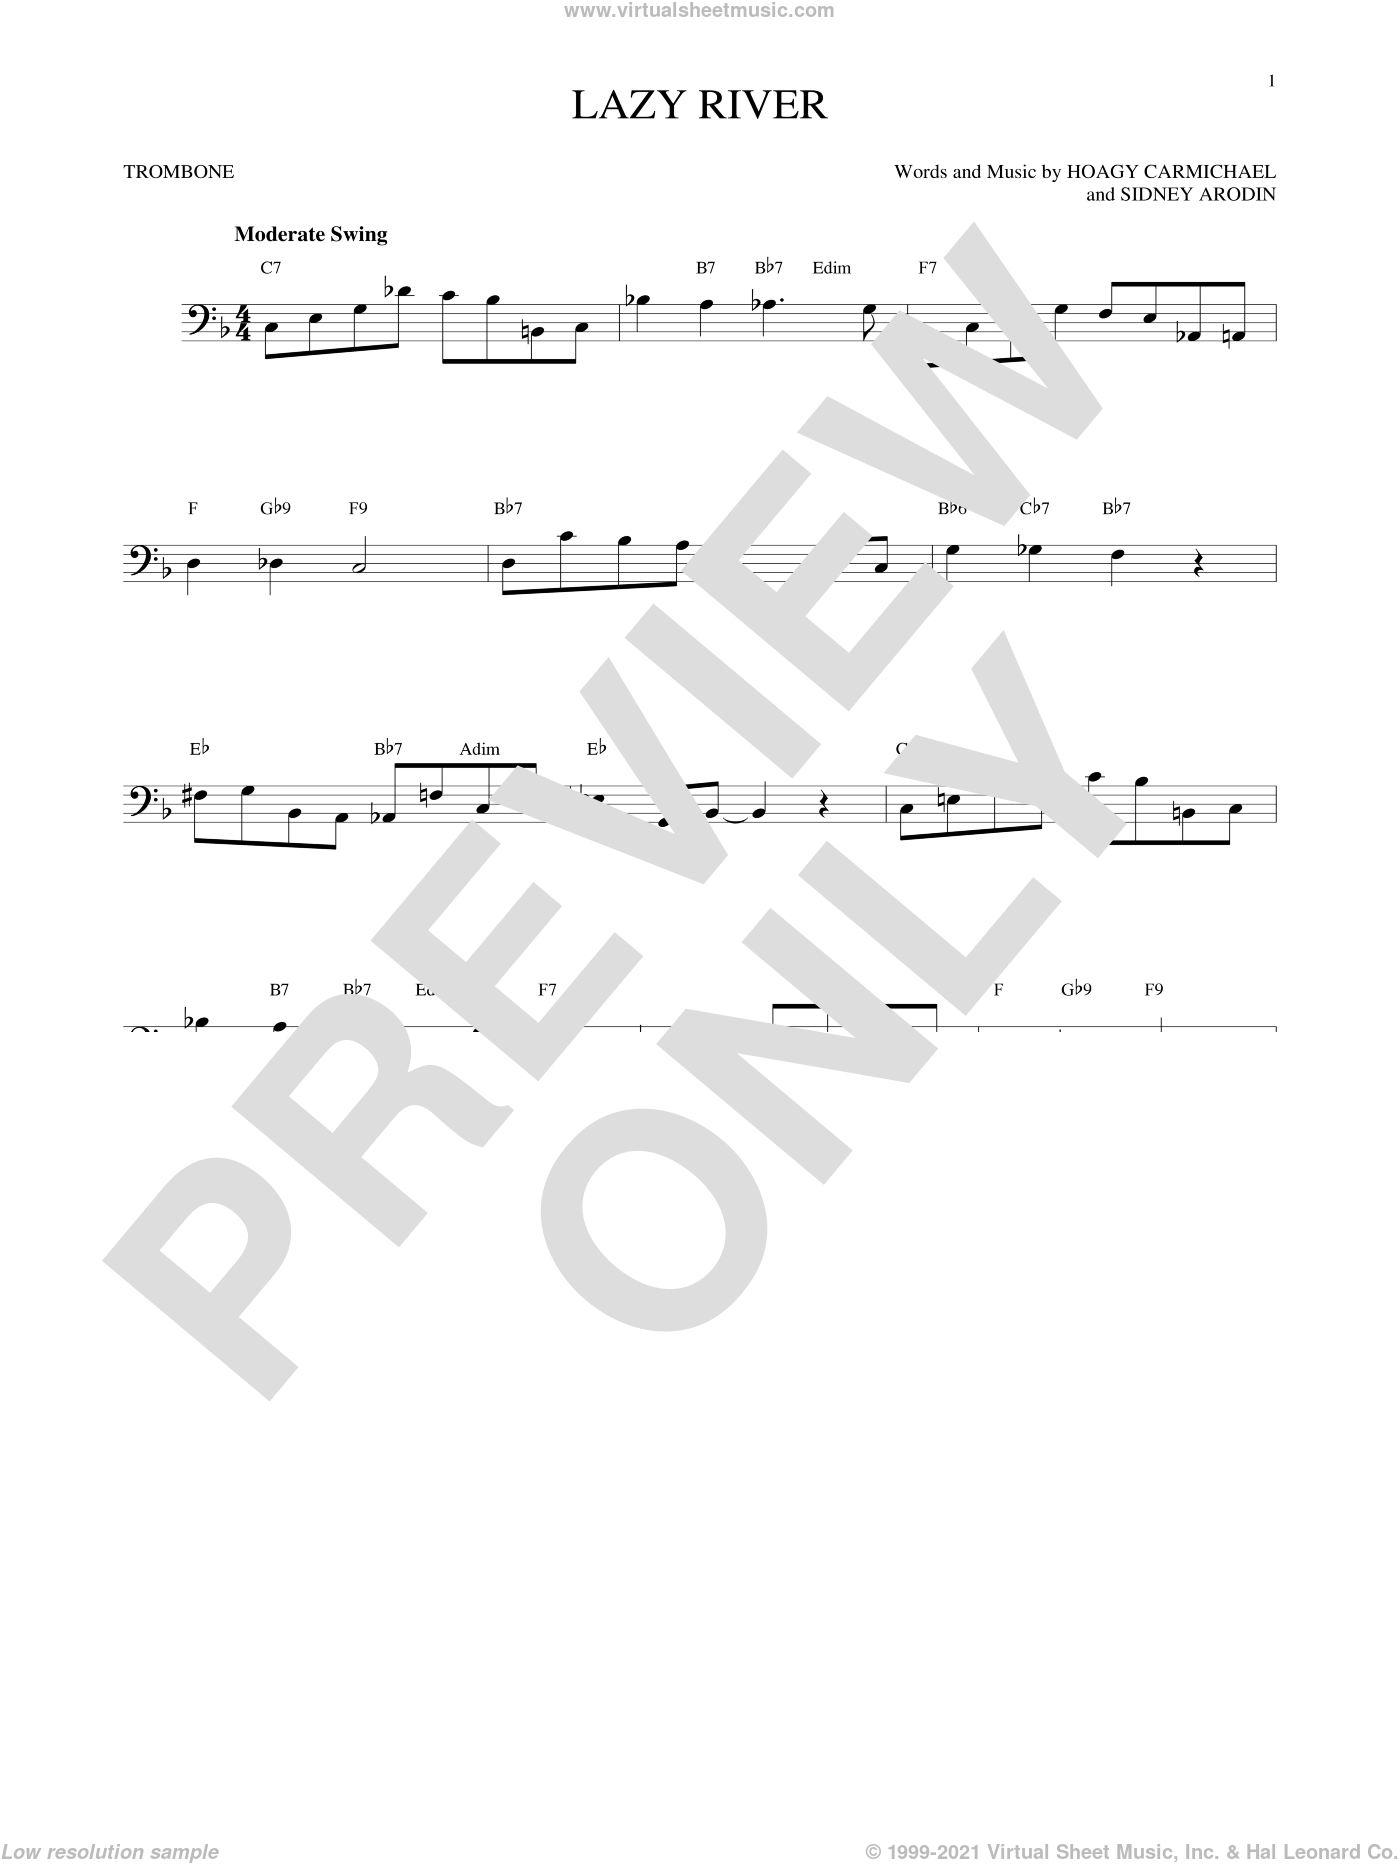 Lazy River sheet music for trombone solo by Hoagy Carmichael, Bobby Darin and Sidney Arodin, intermediate skill level